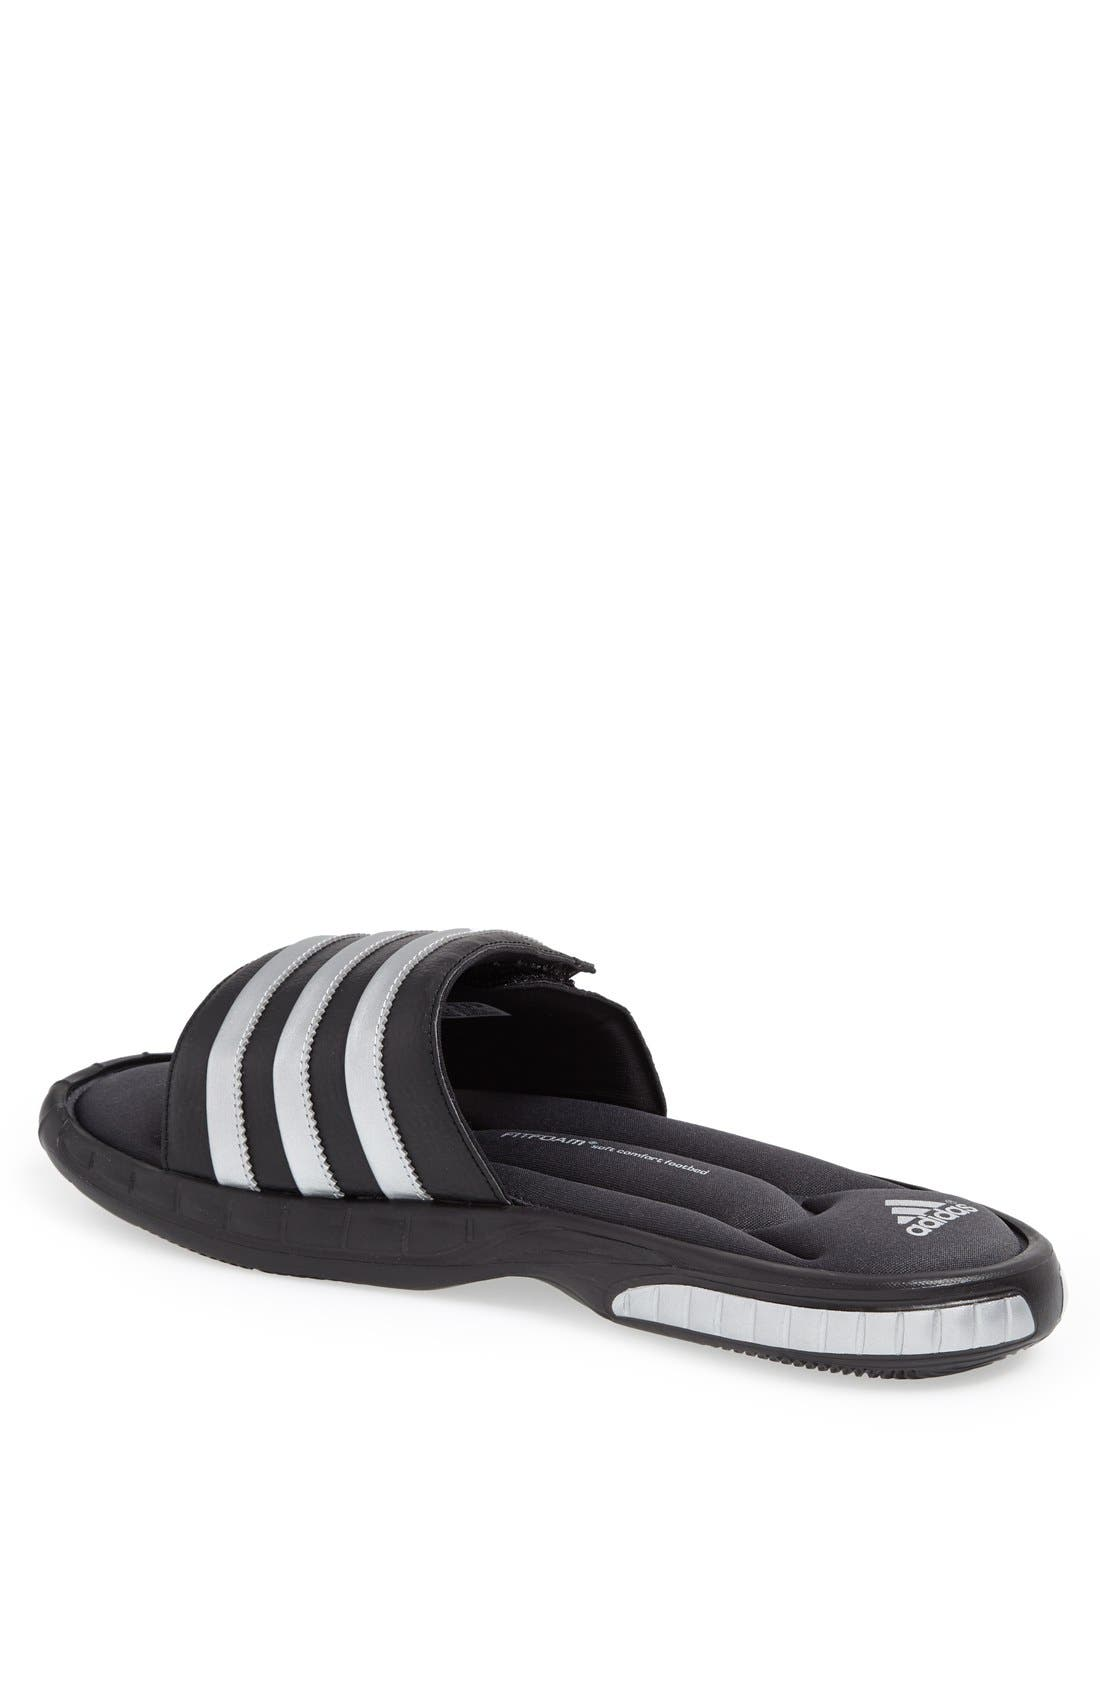 Alternate Image 2  - adidas Superstar 3G Slide Sandal